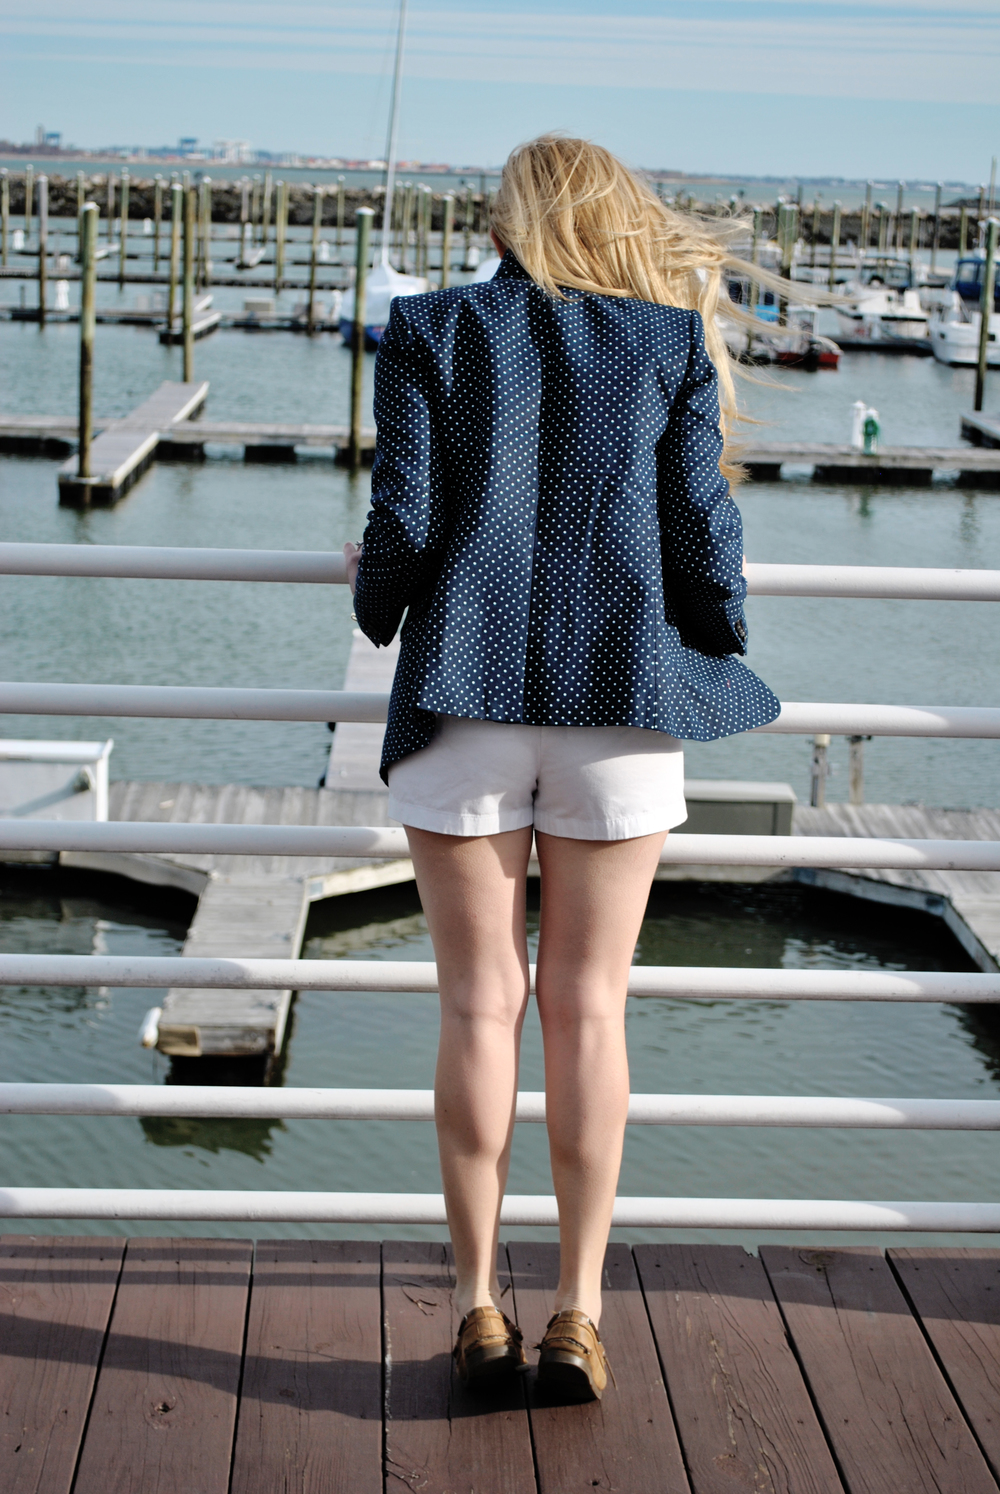 thoughtfulwish | j.crew // nautical outfit // stripes // polkadots // j.crew regent // blazer // polkadot blazer // white shorts // boston // boston blogger // meredith wish